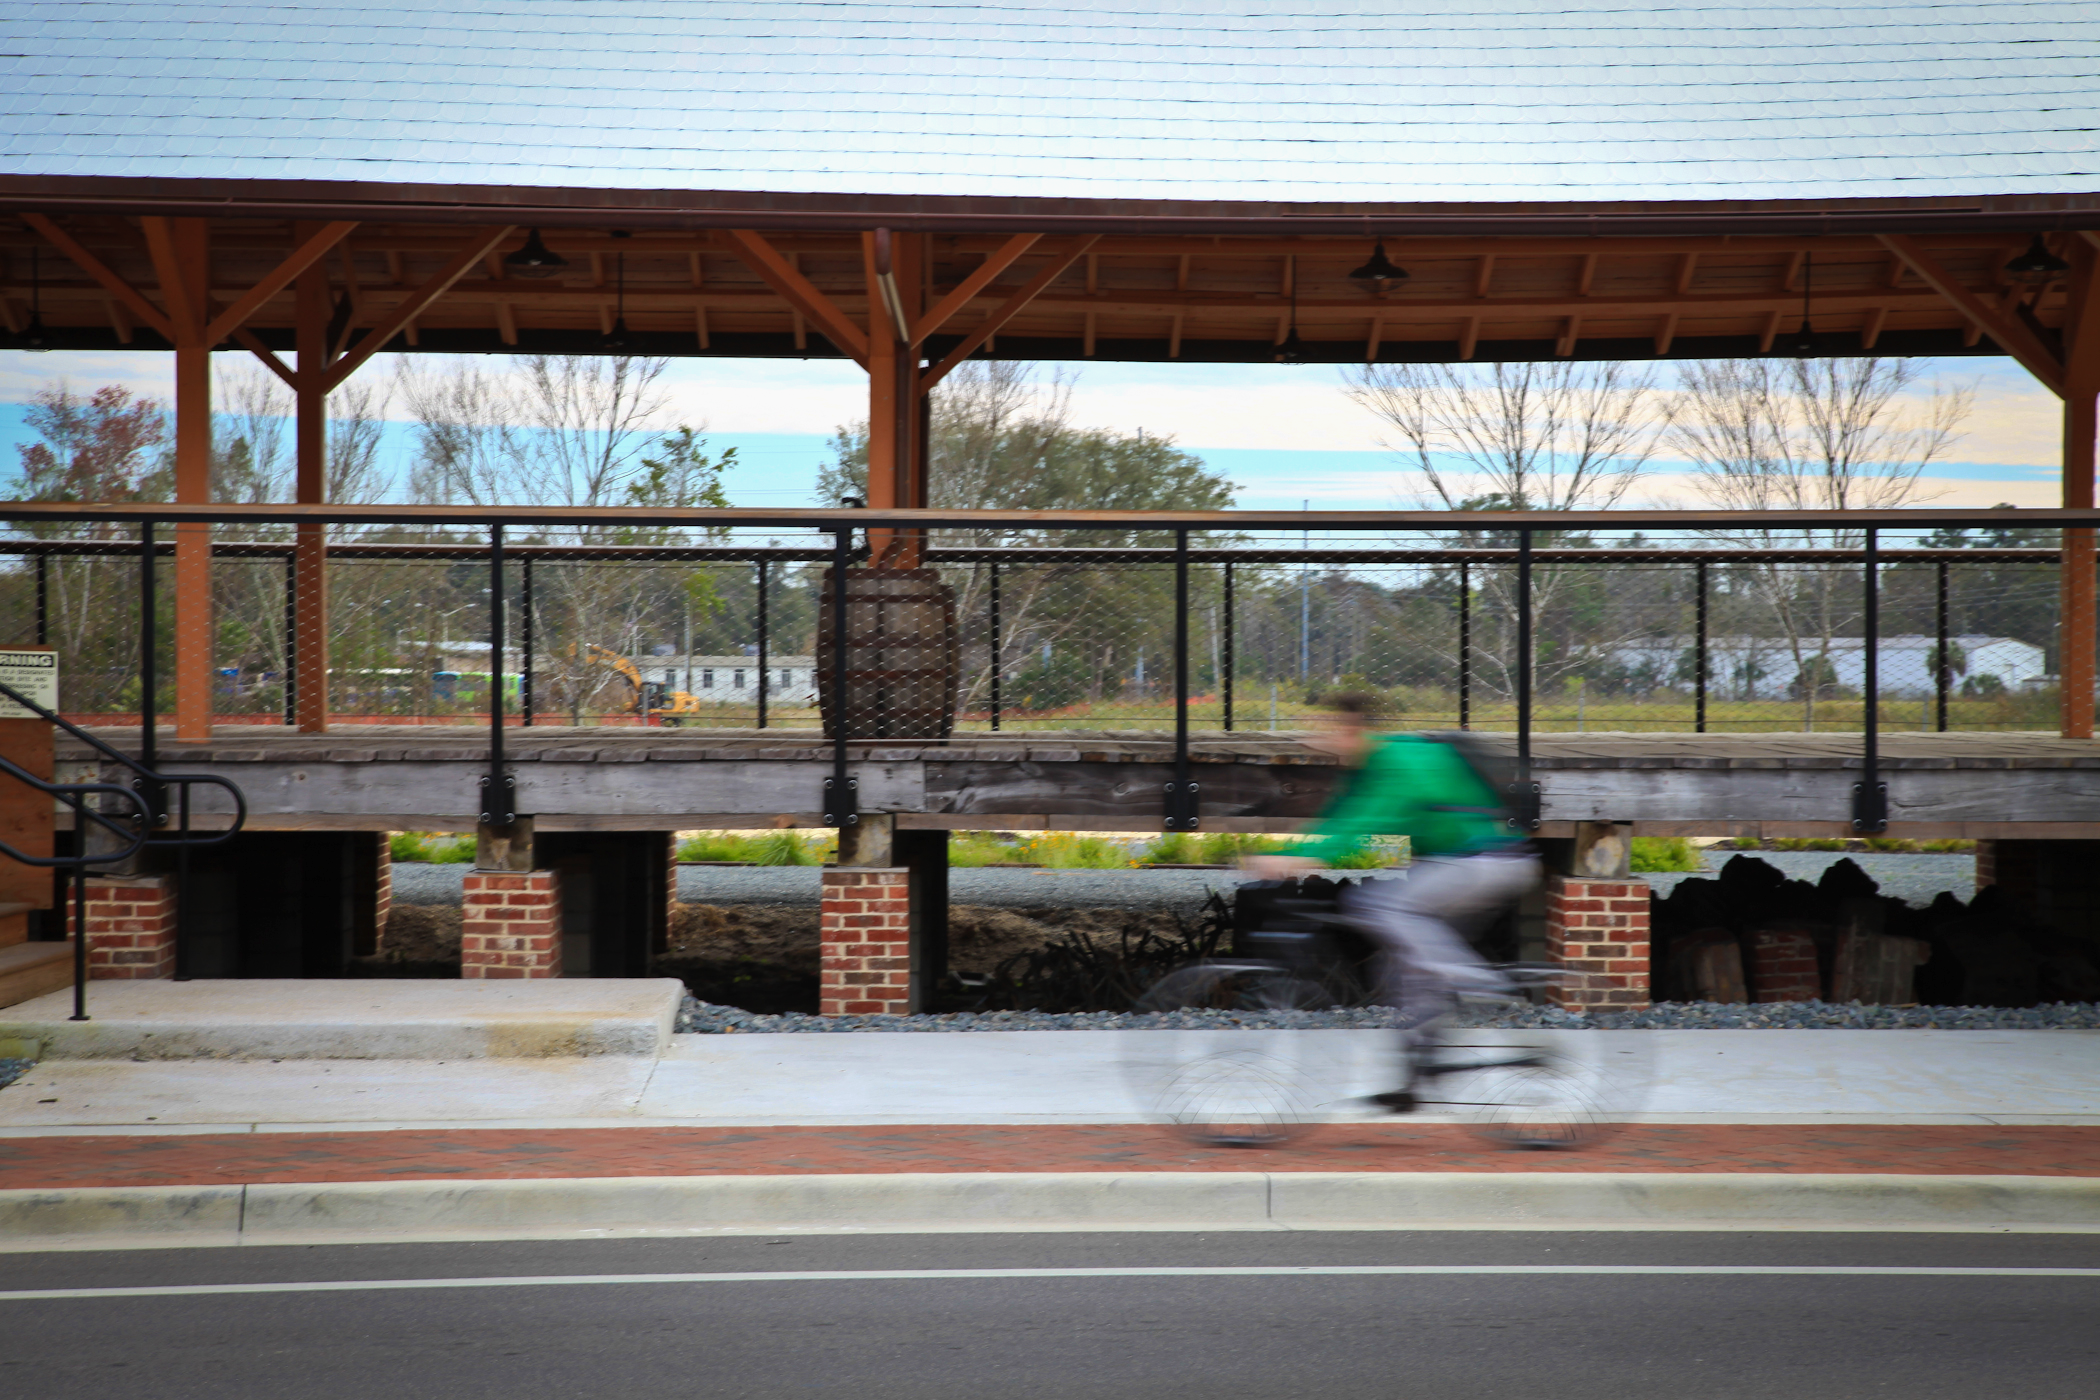 platform-and-cyclist-Matt-Dube.png